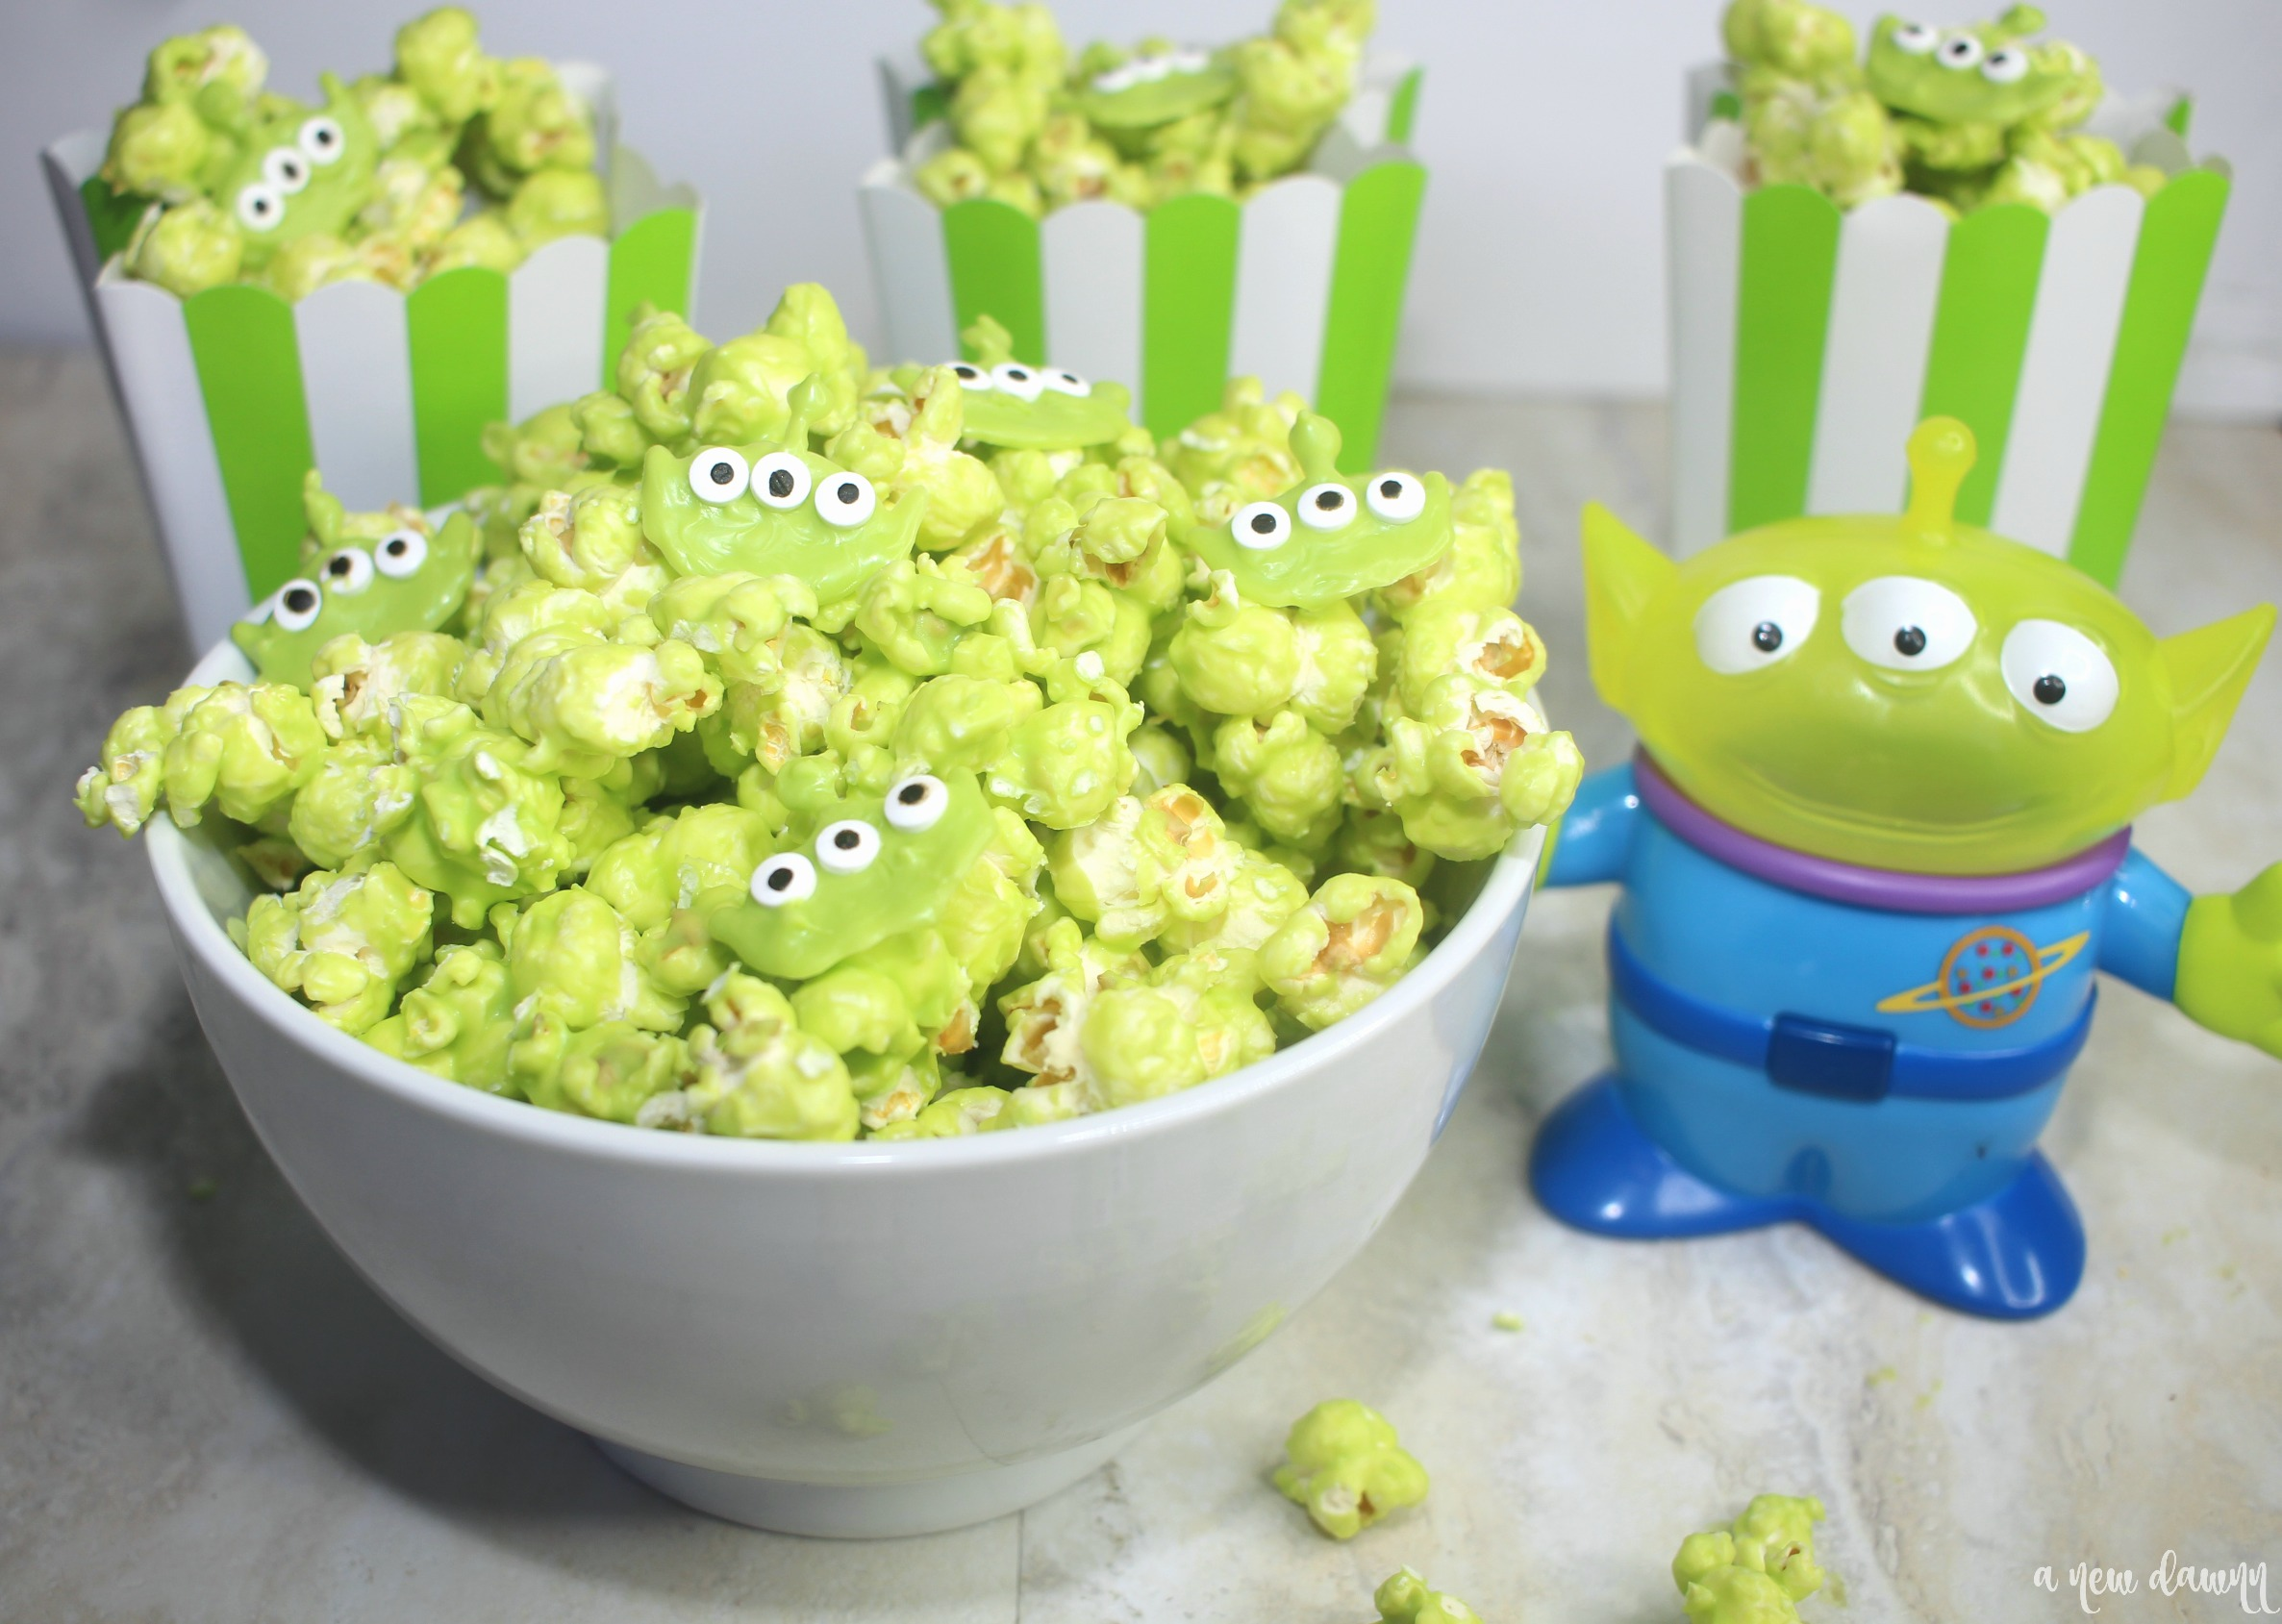 toy story alien and toy story popcorn